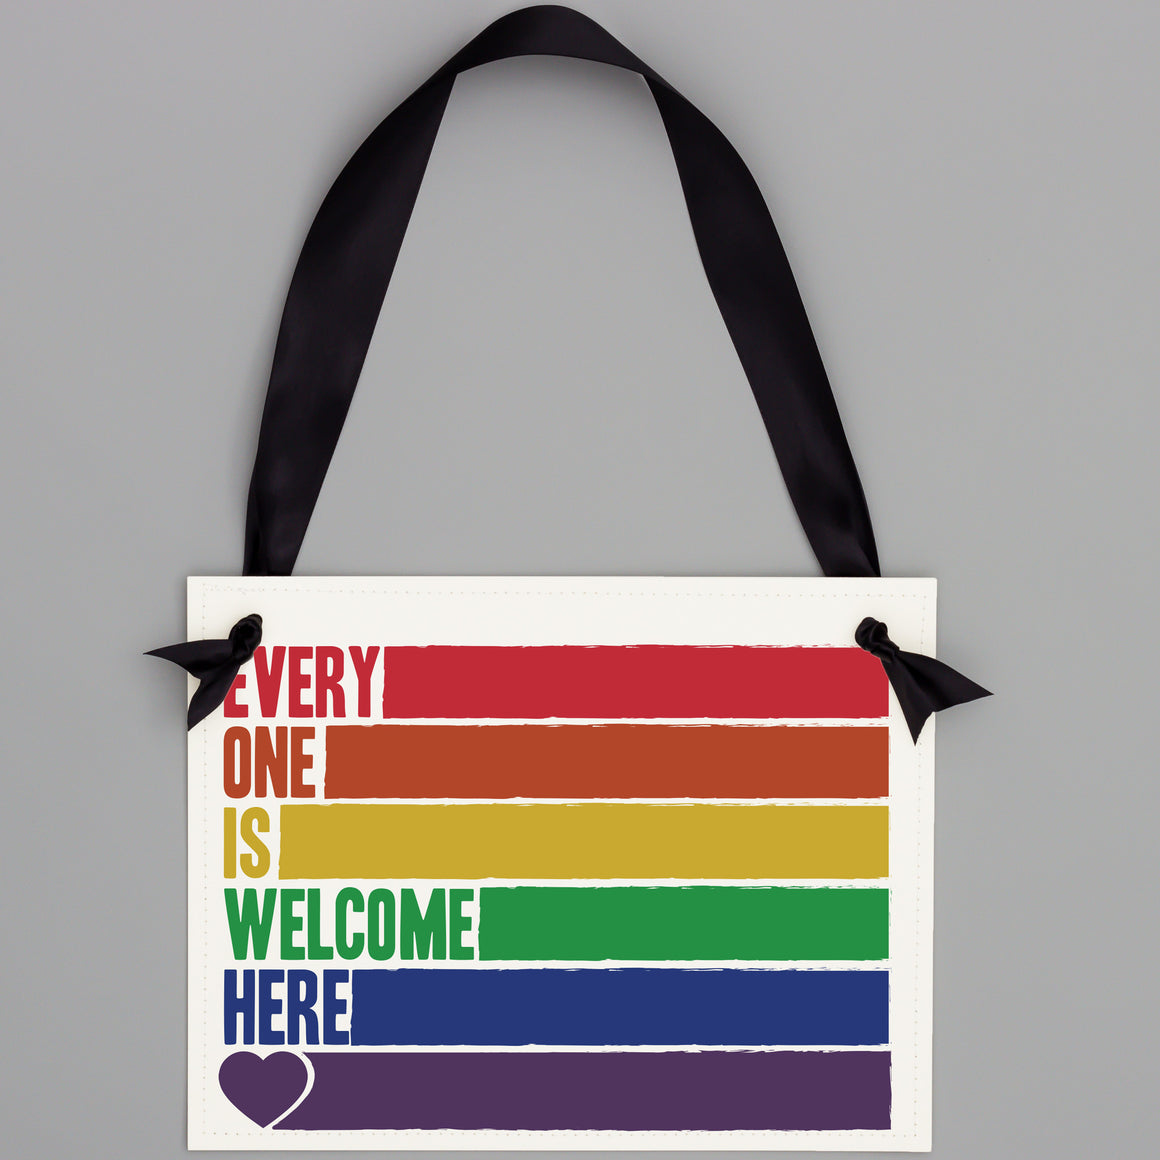 Everyone Is Welcome Here Rainbow Sign for Businesses